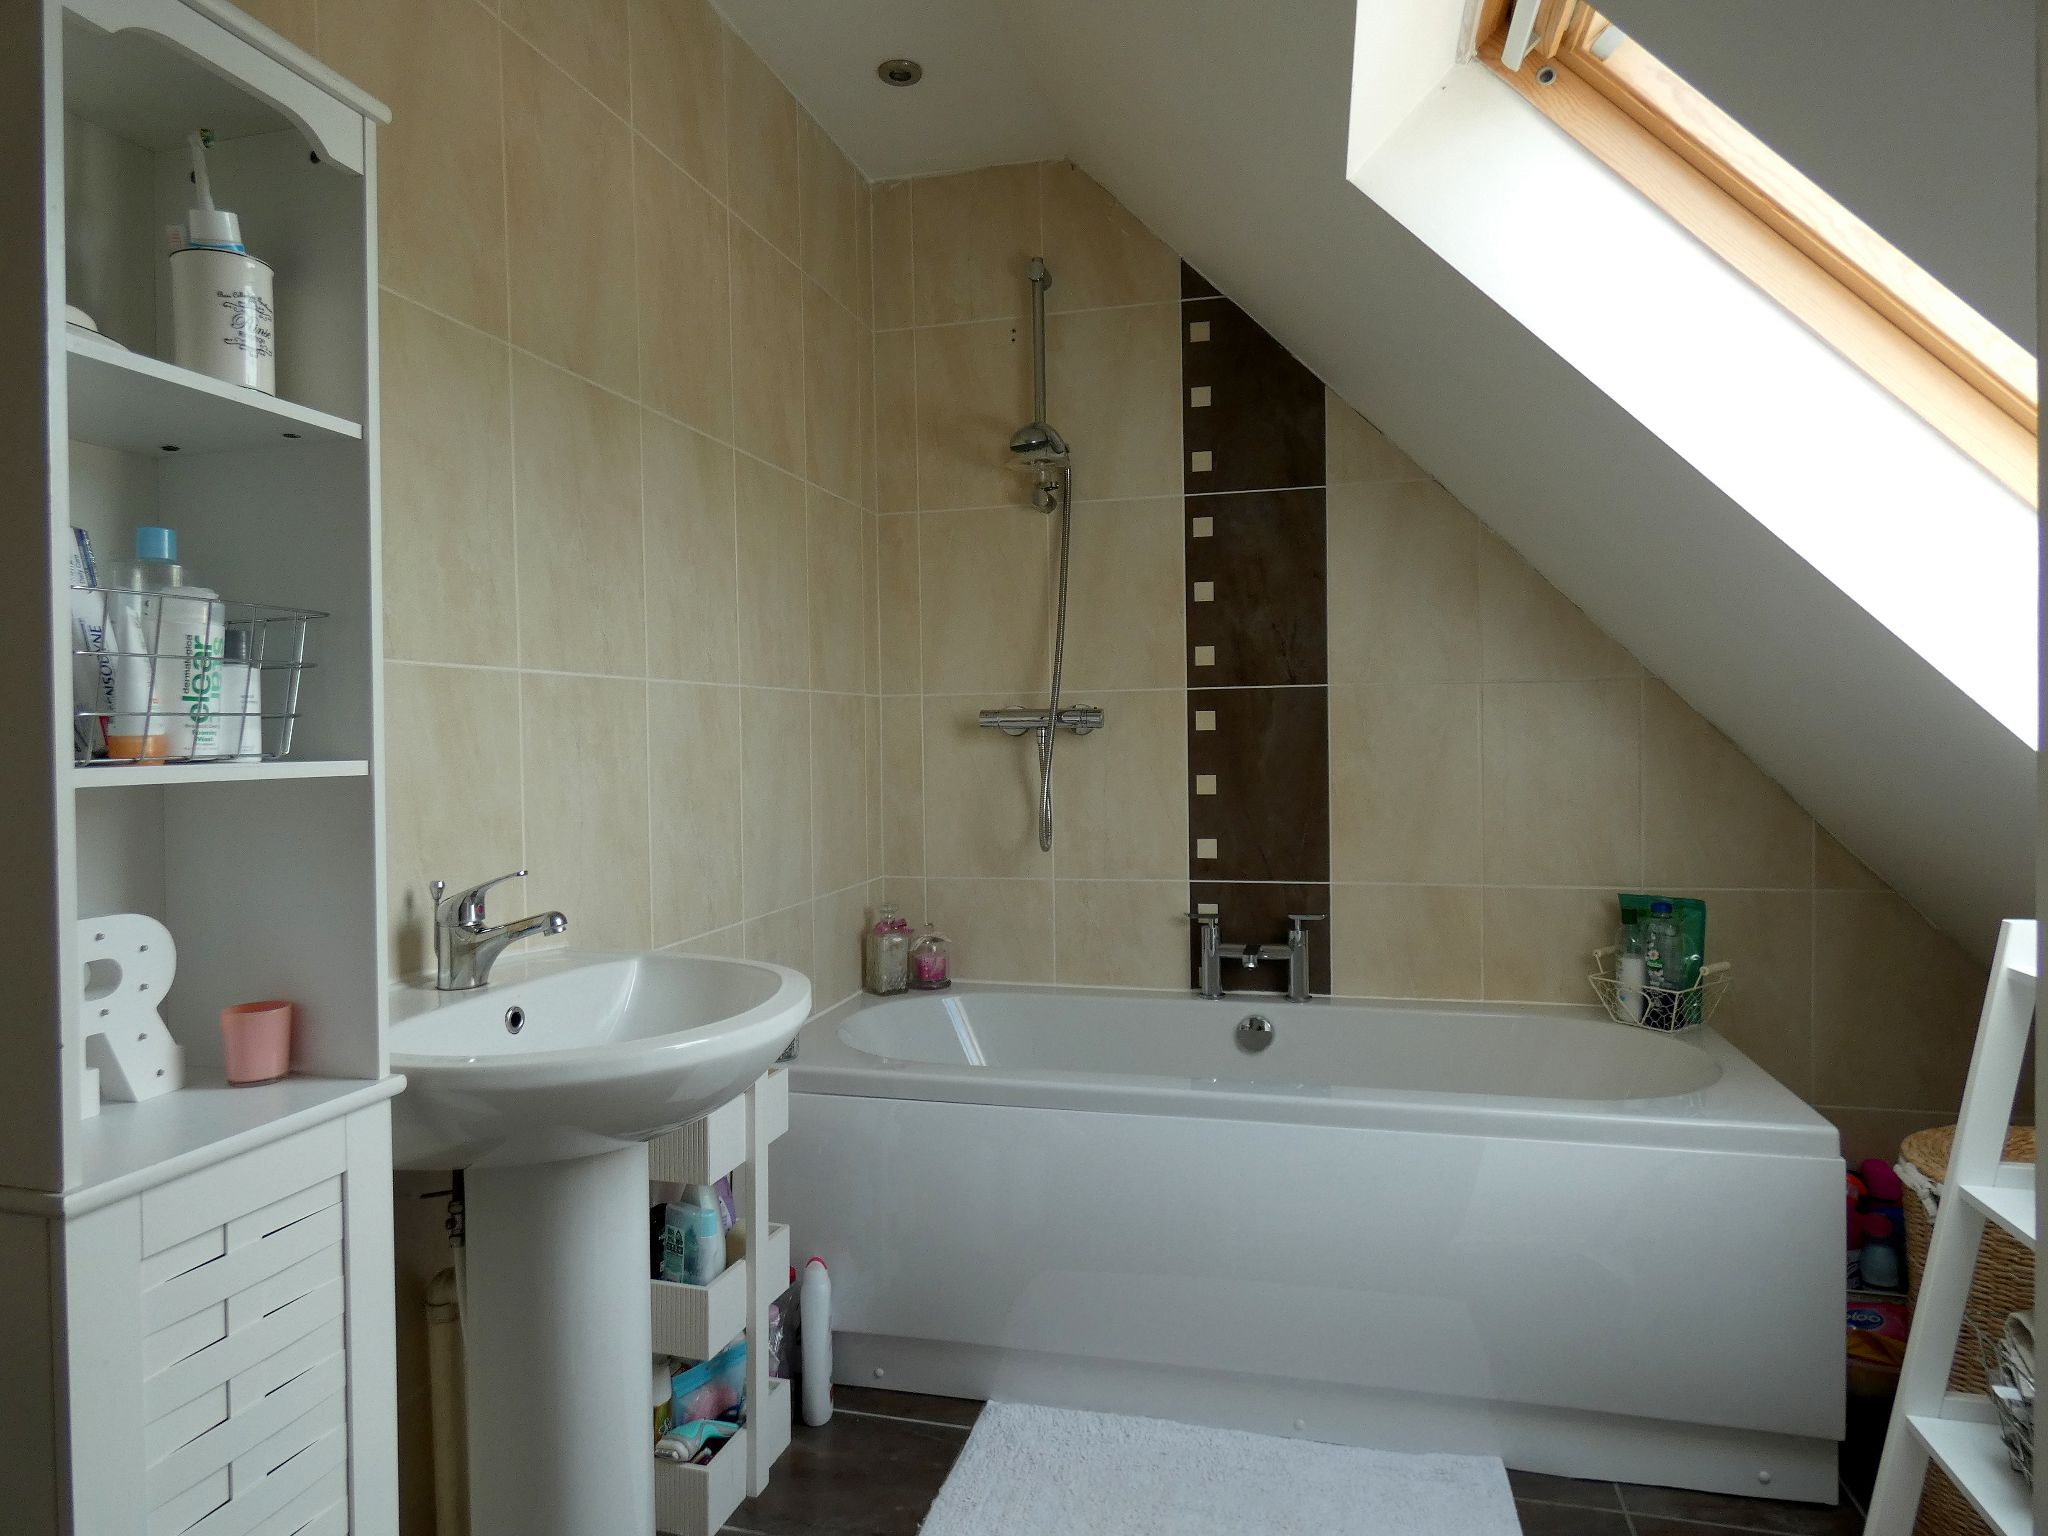 6 bedroom detached house For Sale in Bishop Auckland - Second Floor Bathroom.